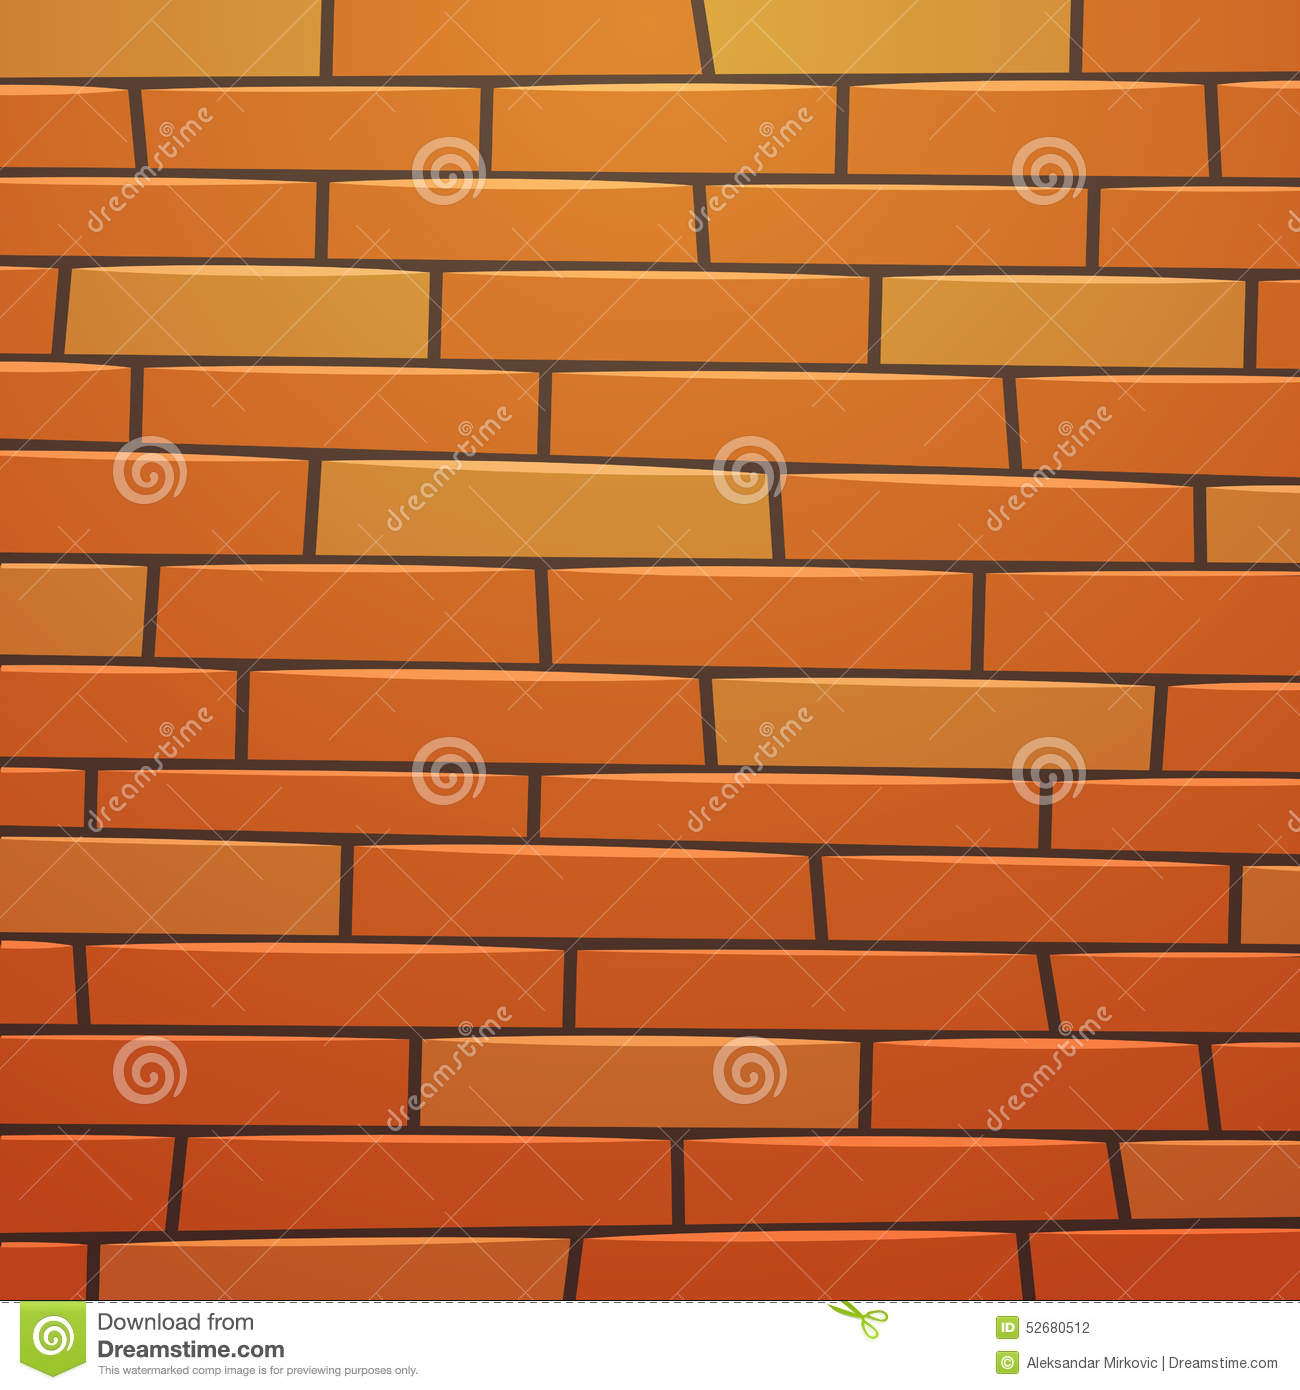 Cartoon Brick Wall Stock Vector - Image: 52680512